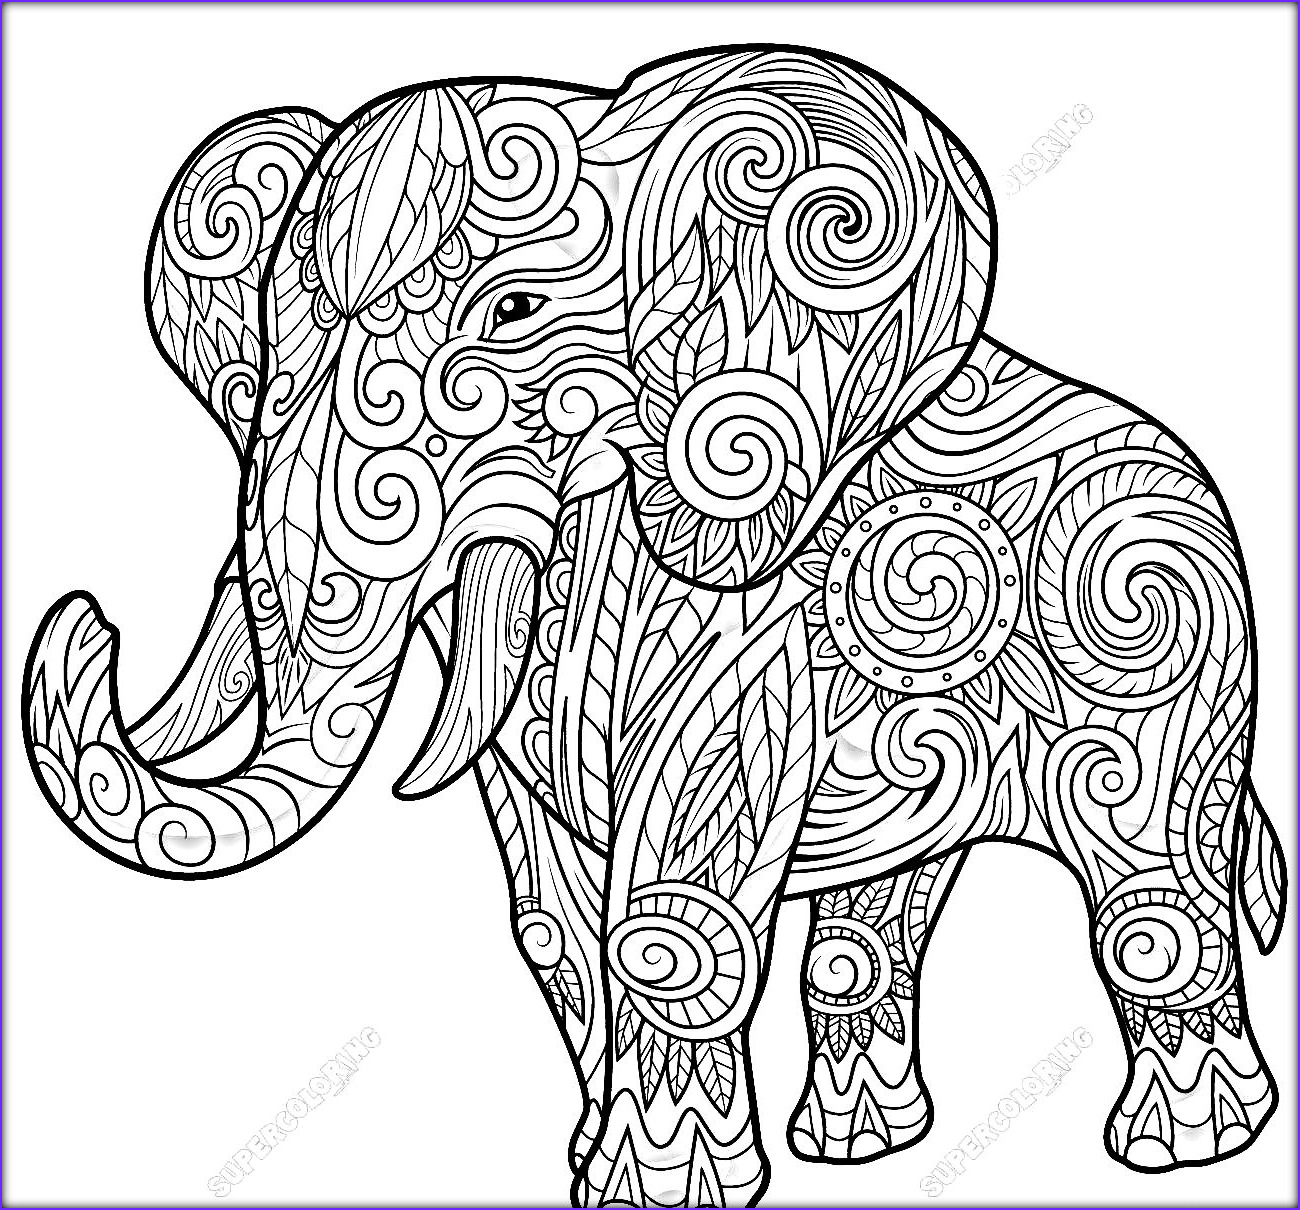 Adult Coloring Elephant Luxury Image Elephant Coloring Pages Coloringsuite